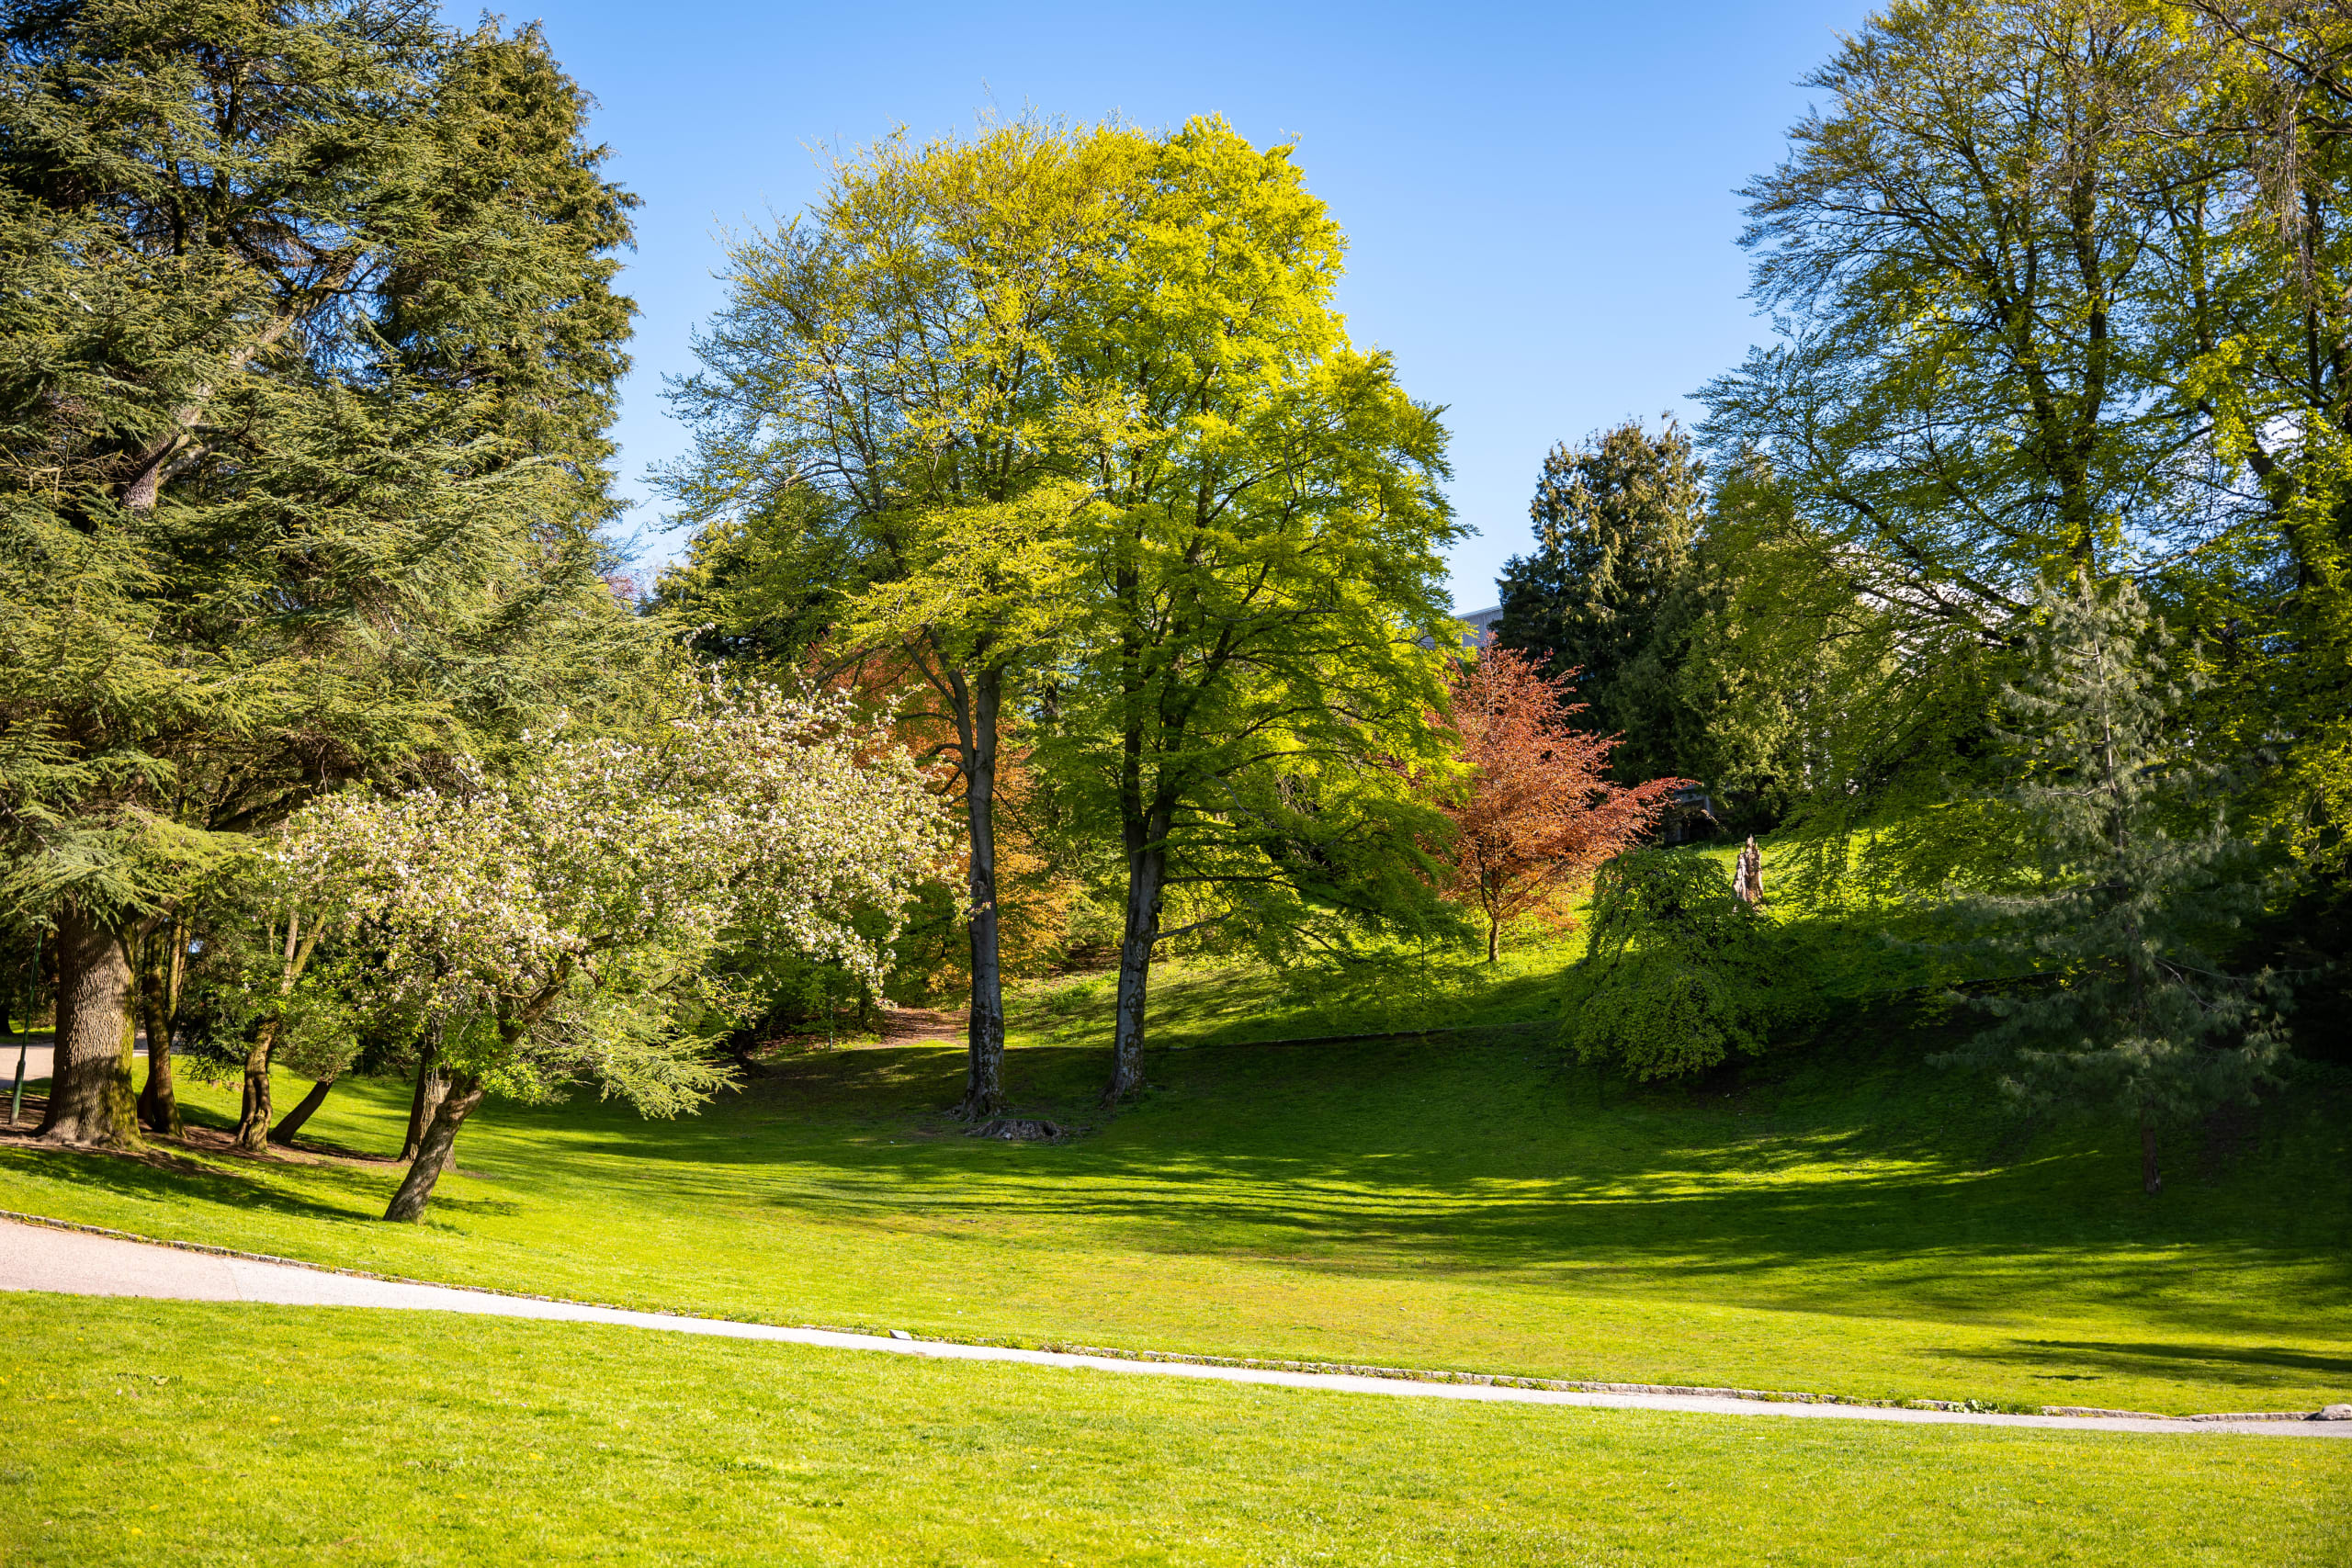 Nygaardsparken in Bergen city